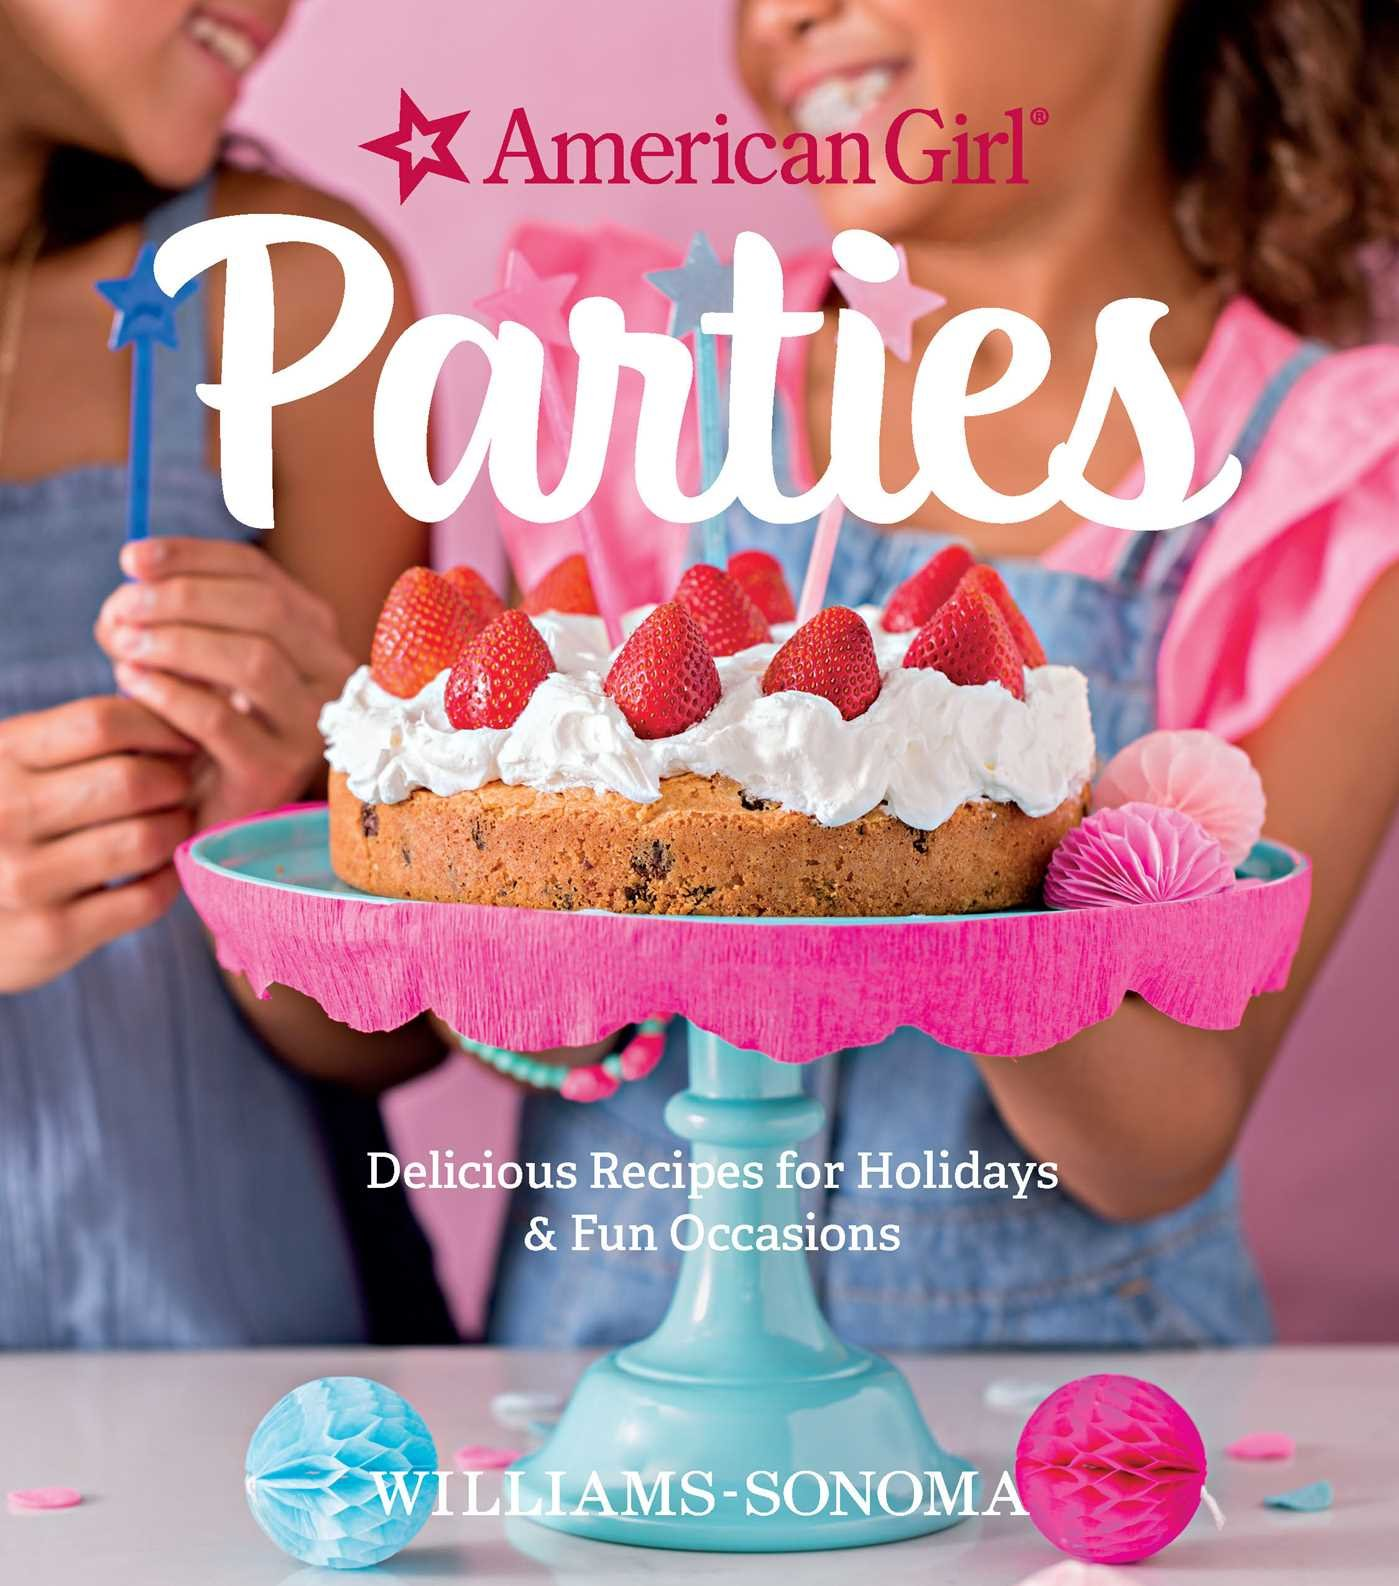 American Girl Parties Delicious occasions